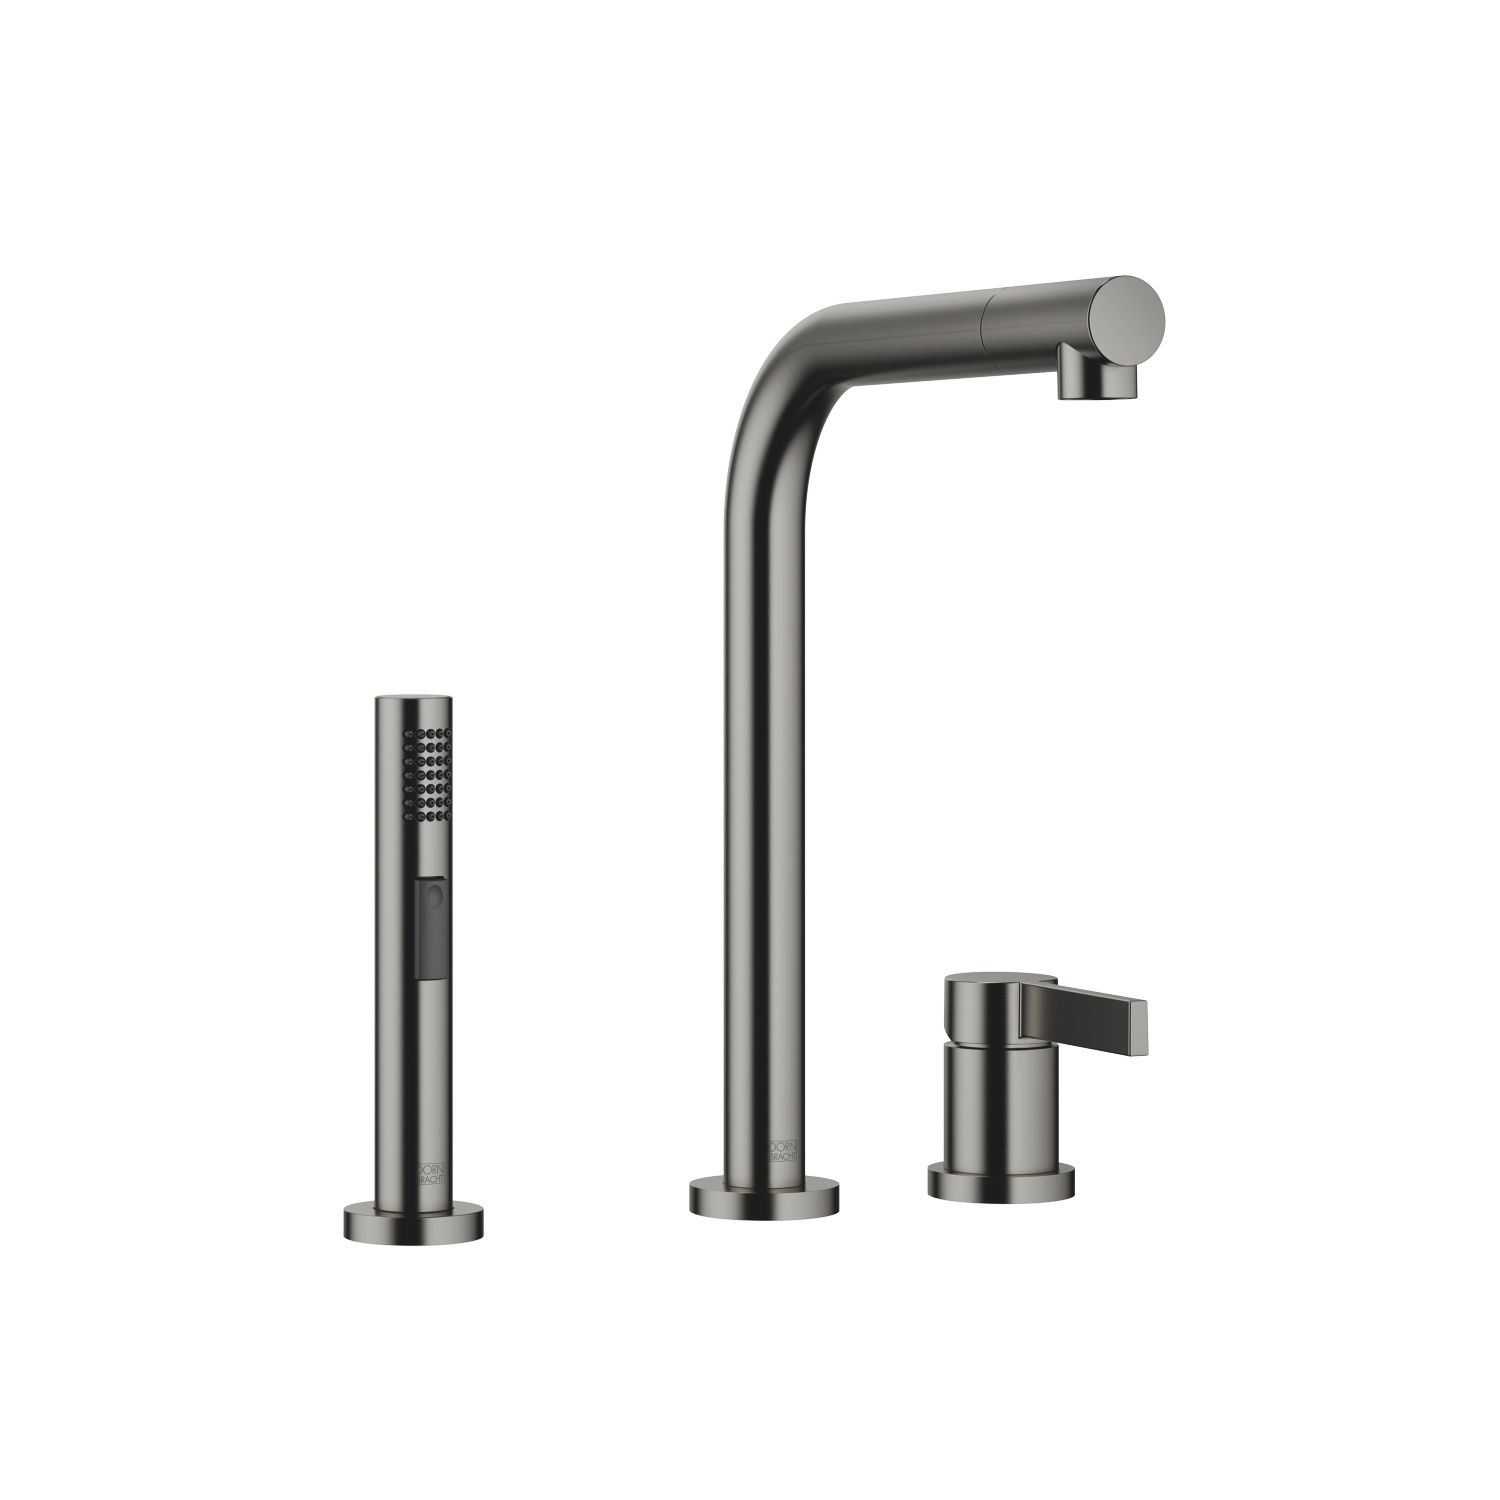 Two-hole mixer with individual flanges with side spray set - Dark Platinum matte